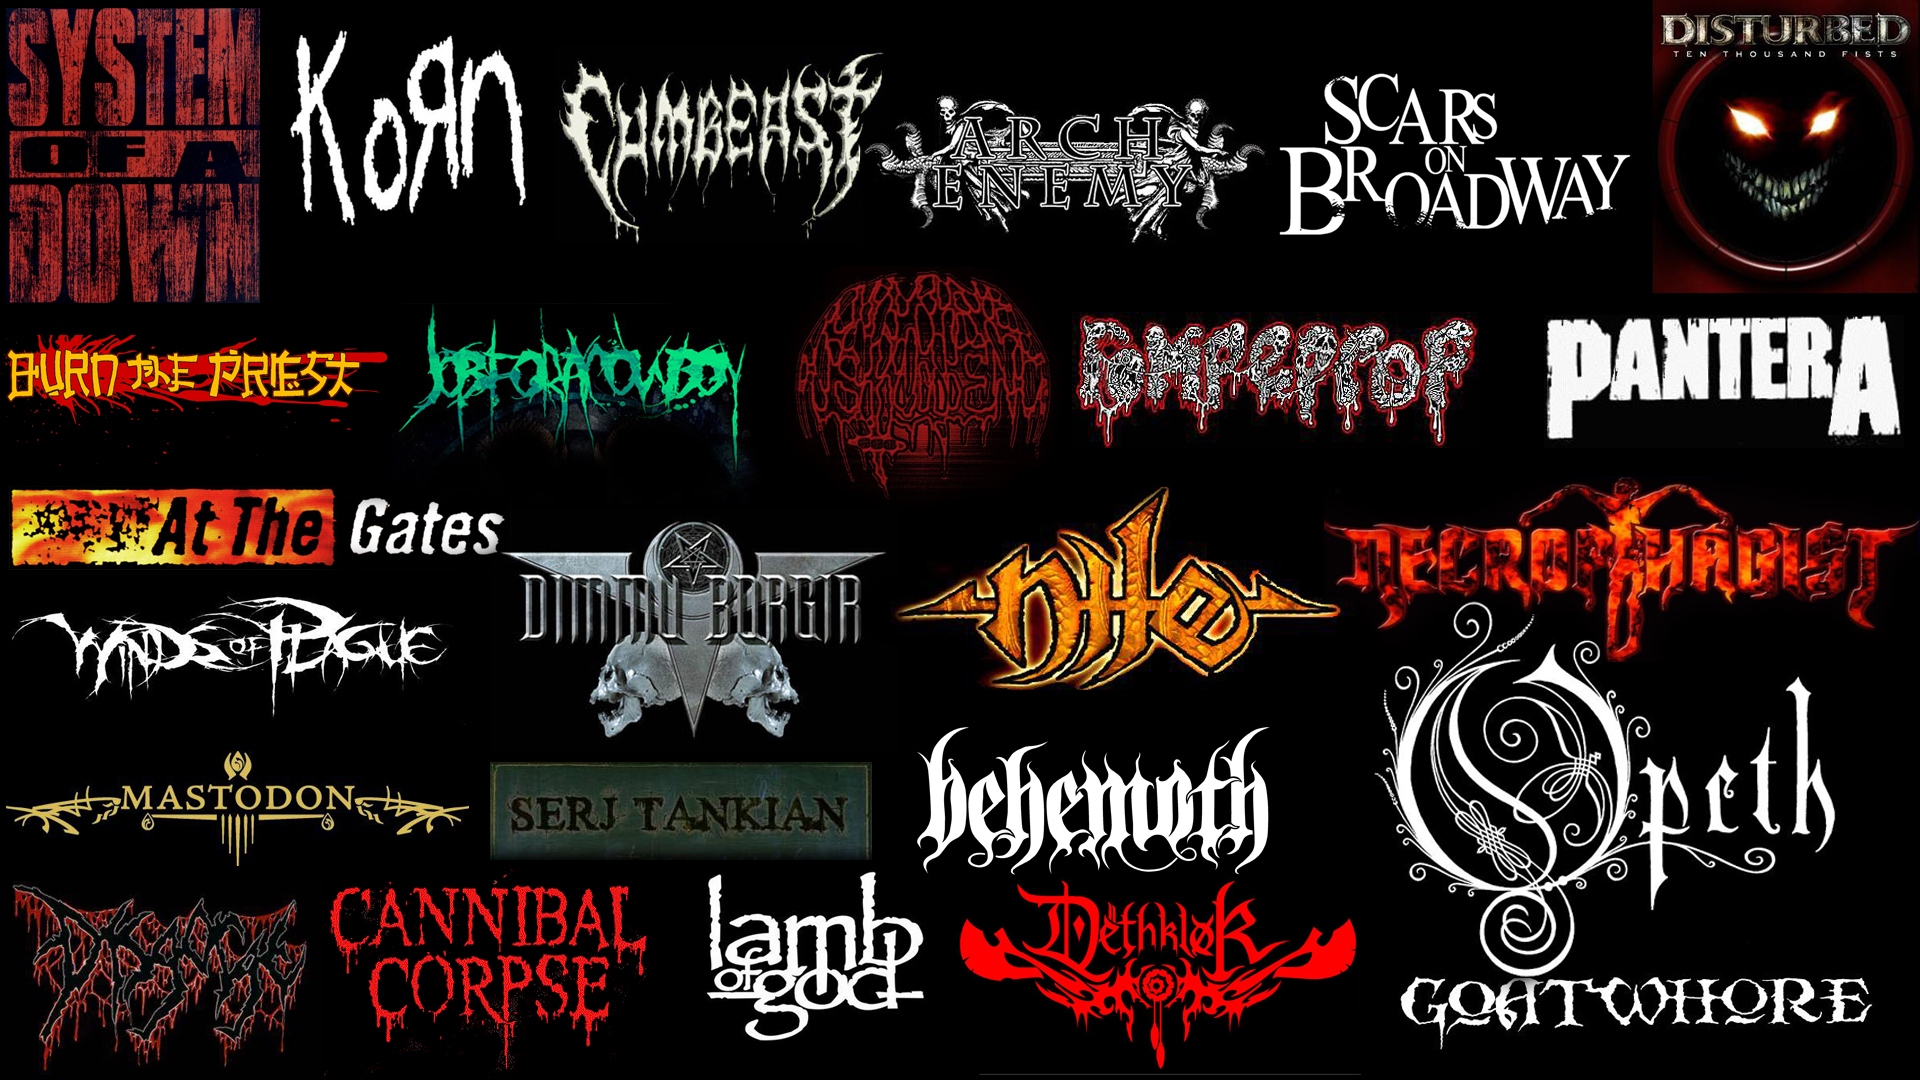 Music Metal Dethklok Opeth Soad Disturbed Dimmu Borgir